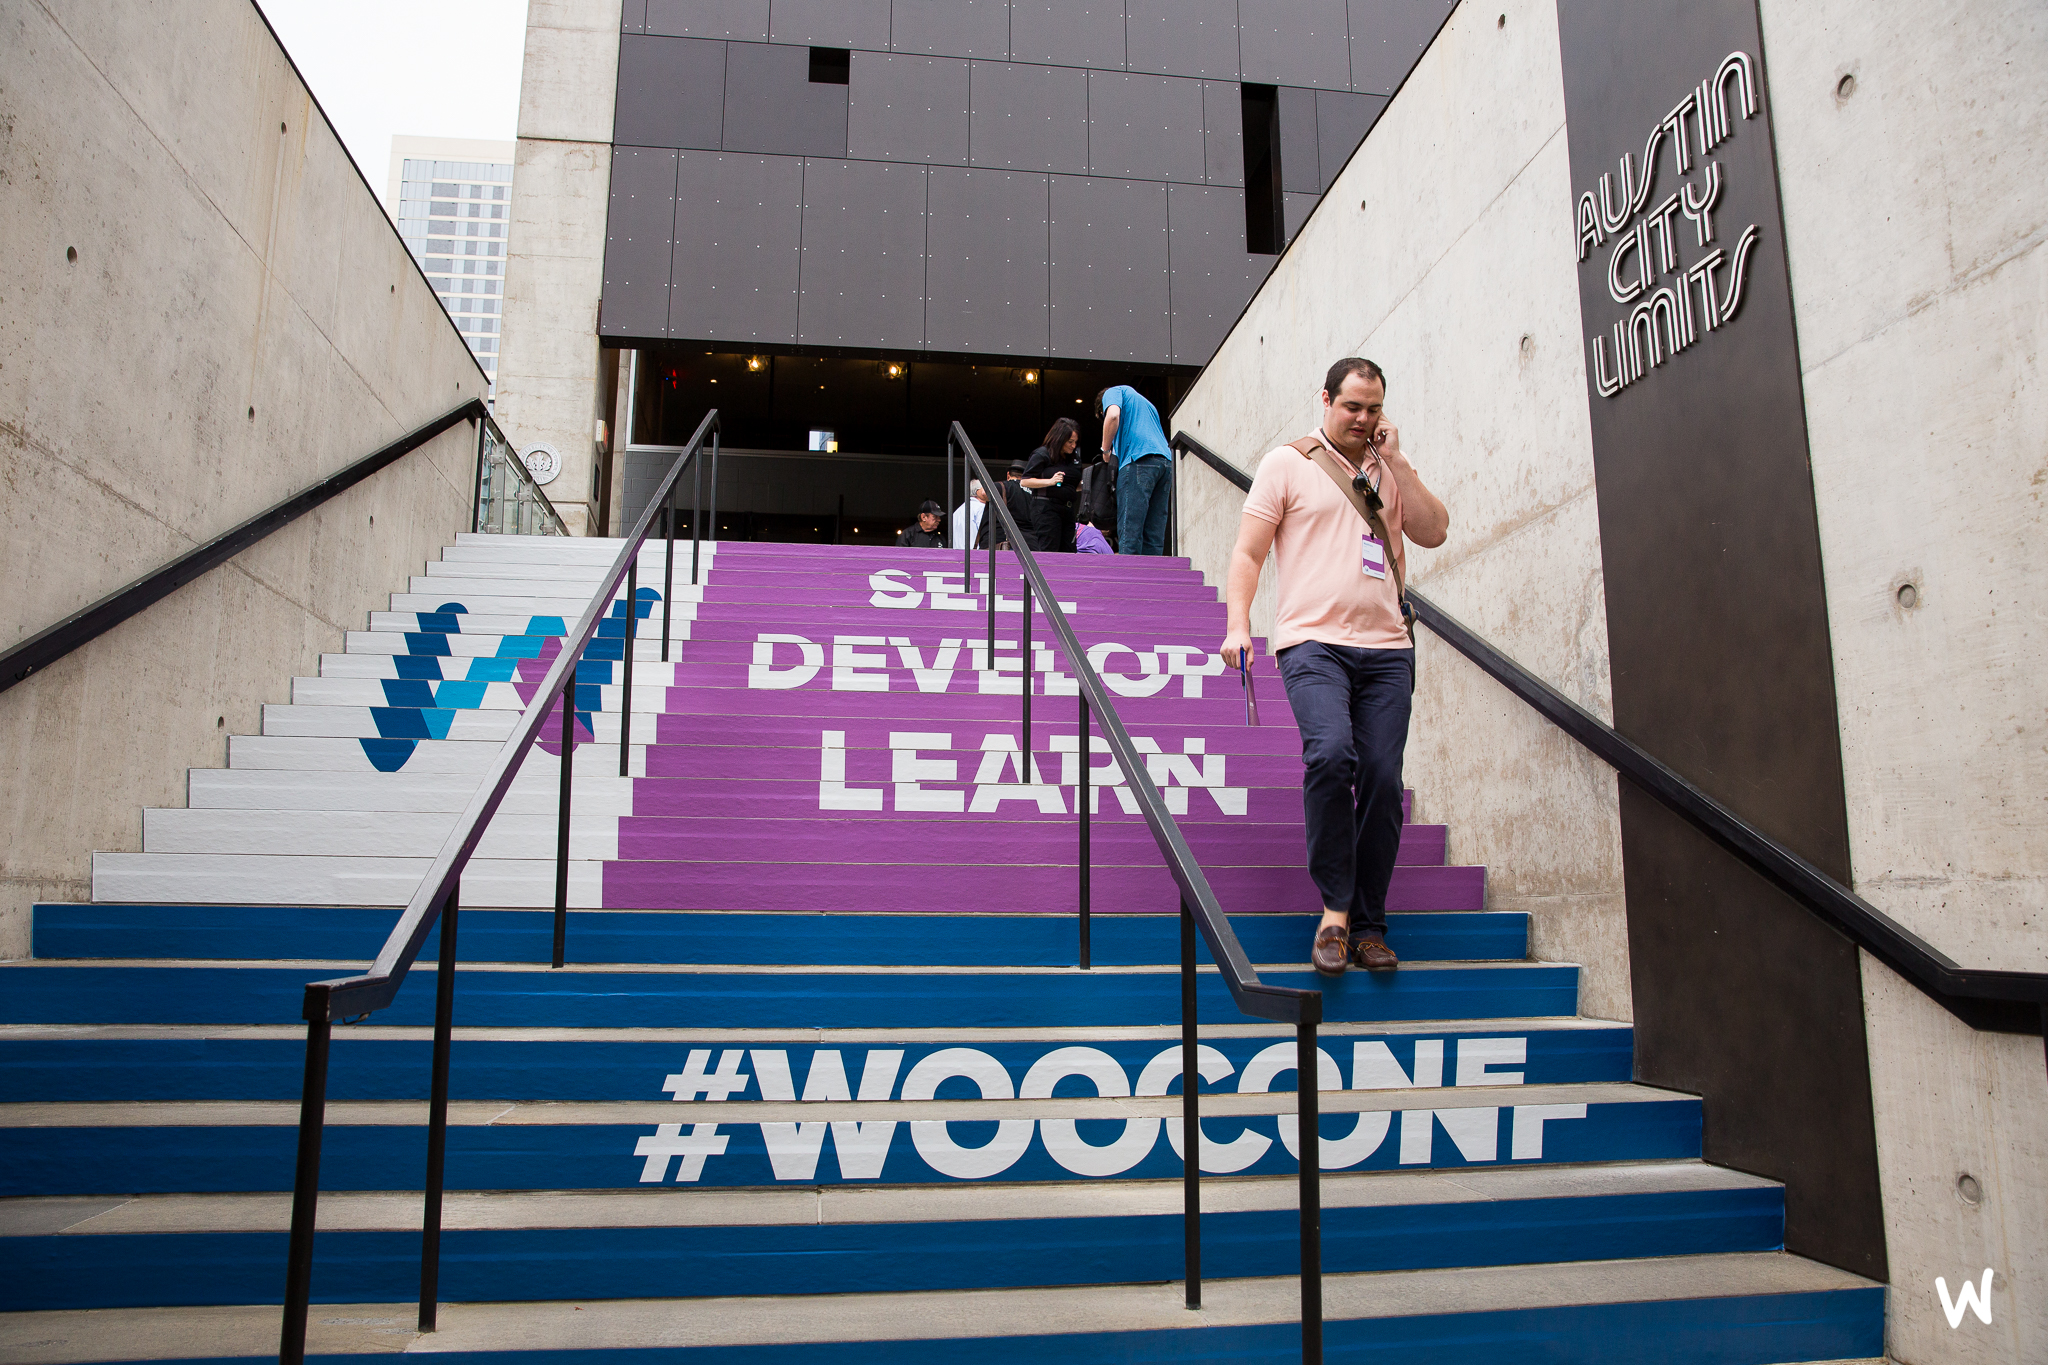 WooConf aimed to be a great opportunity to connect, learn, and develop your skills, whether you were a store owner just starting out or an experienced developer.